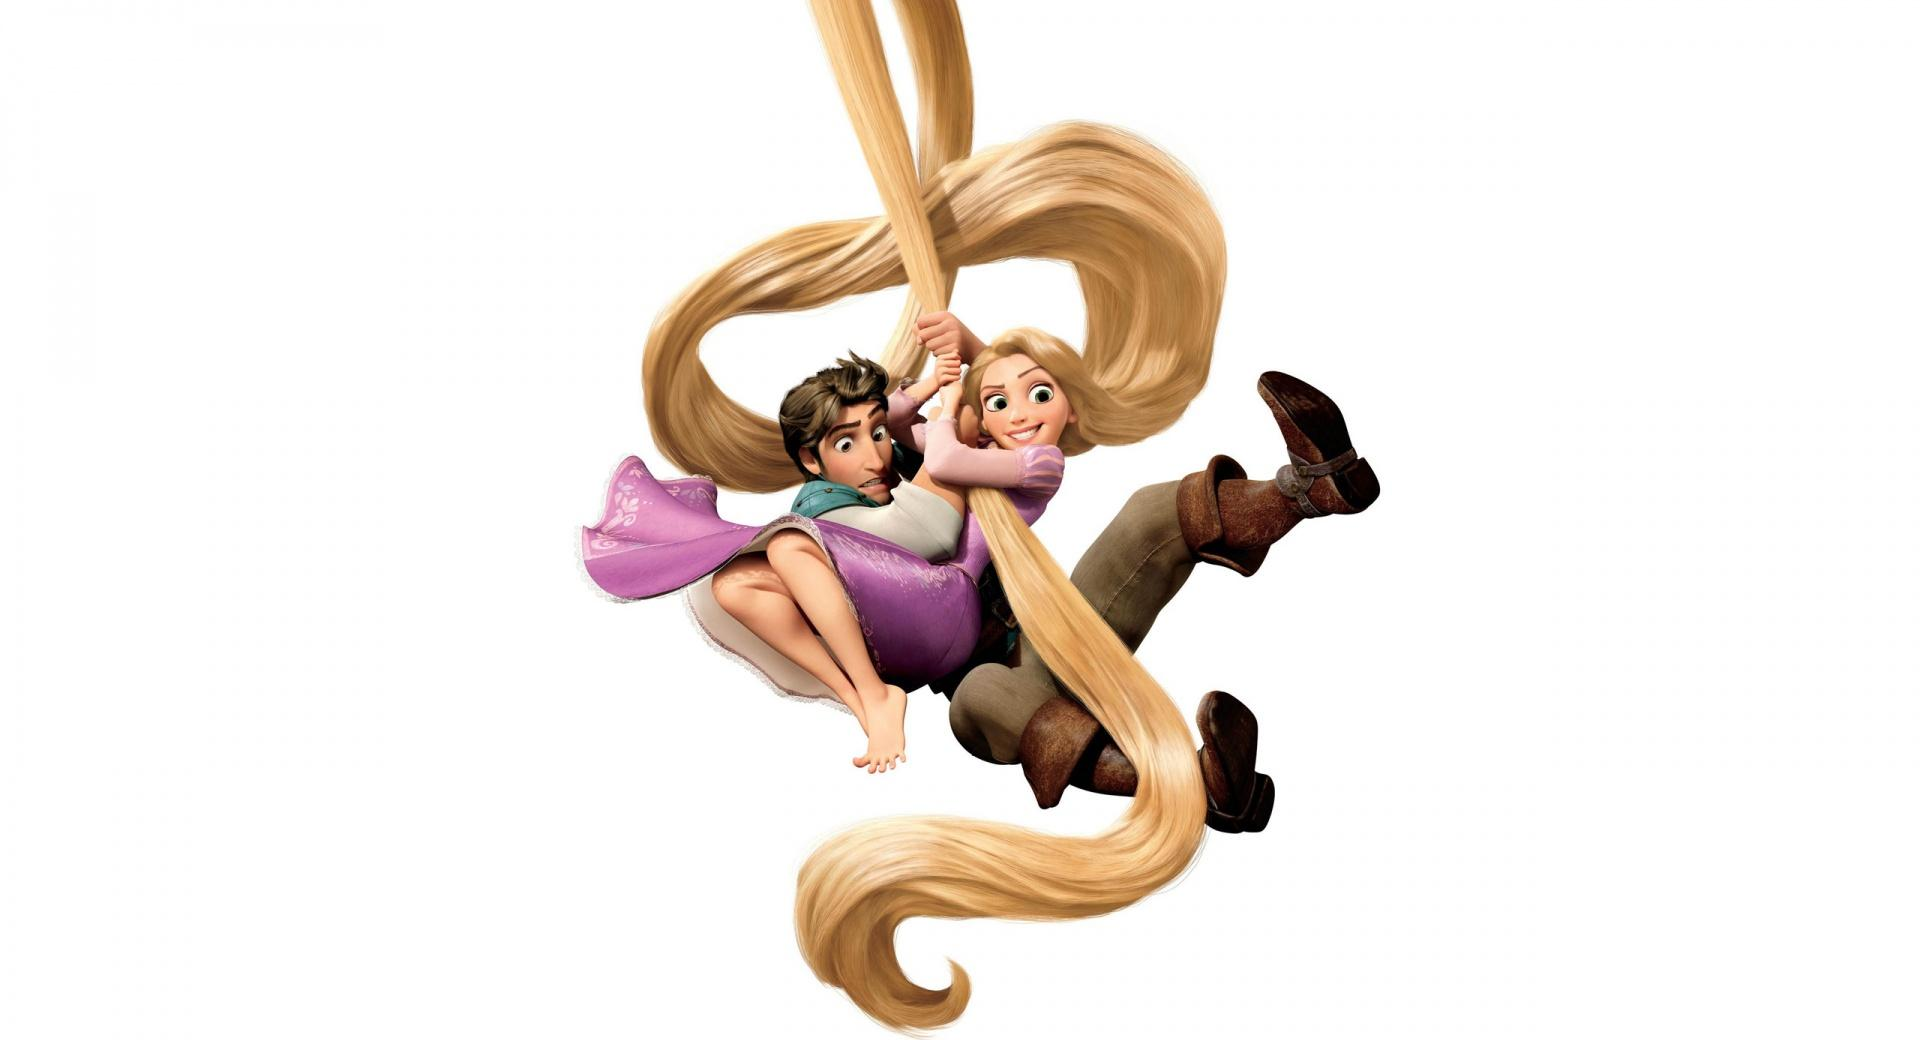 Tangled Rapunzel And Flynn Ryder wallpapers HD quality